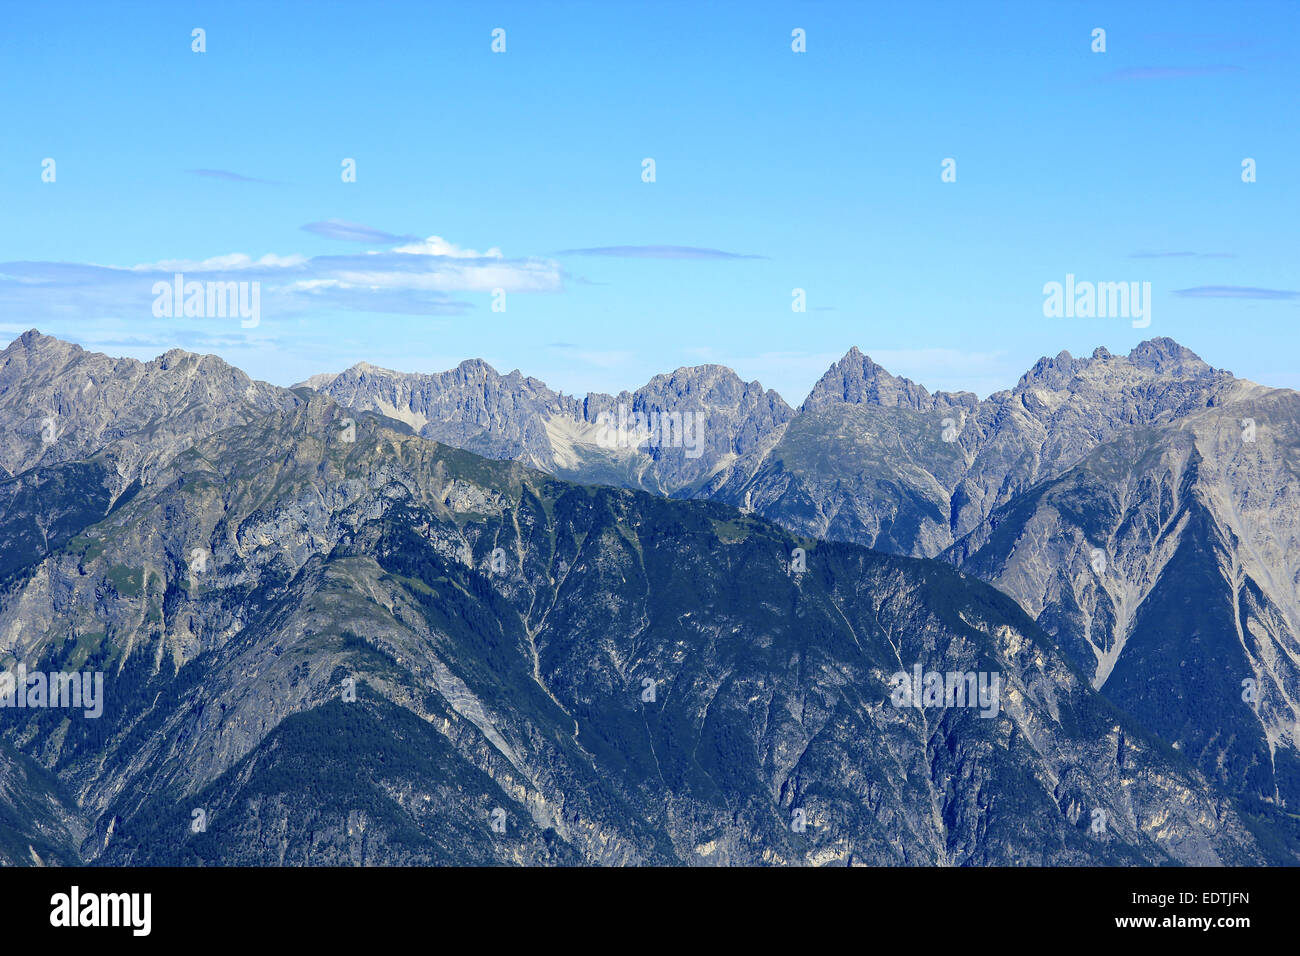 Gebirgslandschaft bei Fiss in Tirol, Österreich,Mountain Landscape at Fiss in Tyrol, Austria,alps, mountains, - Stock Image